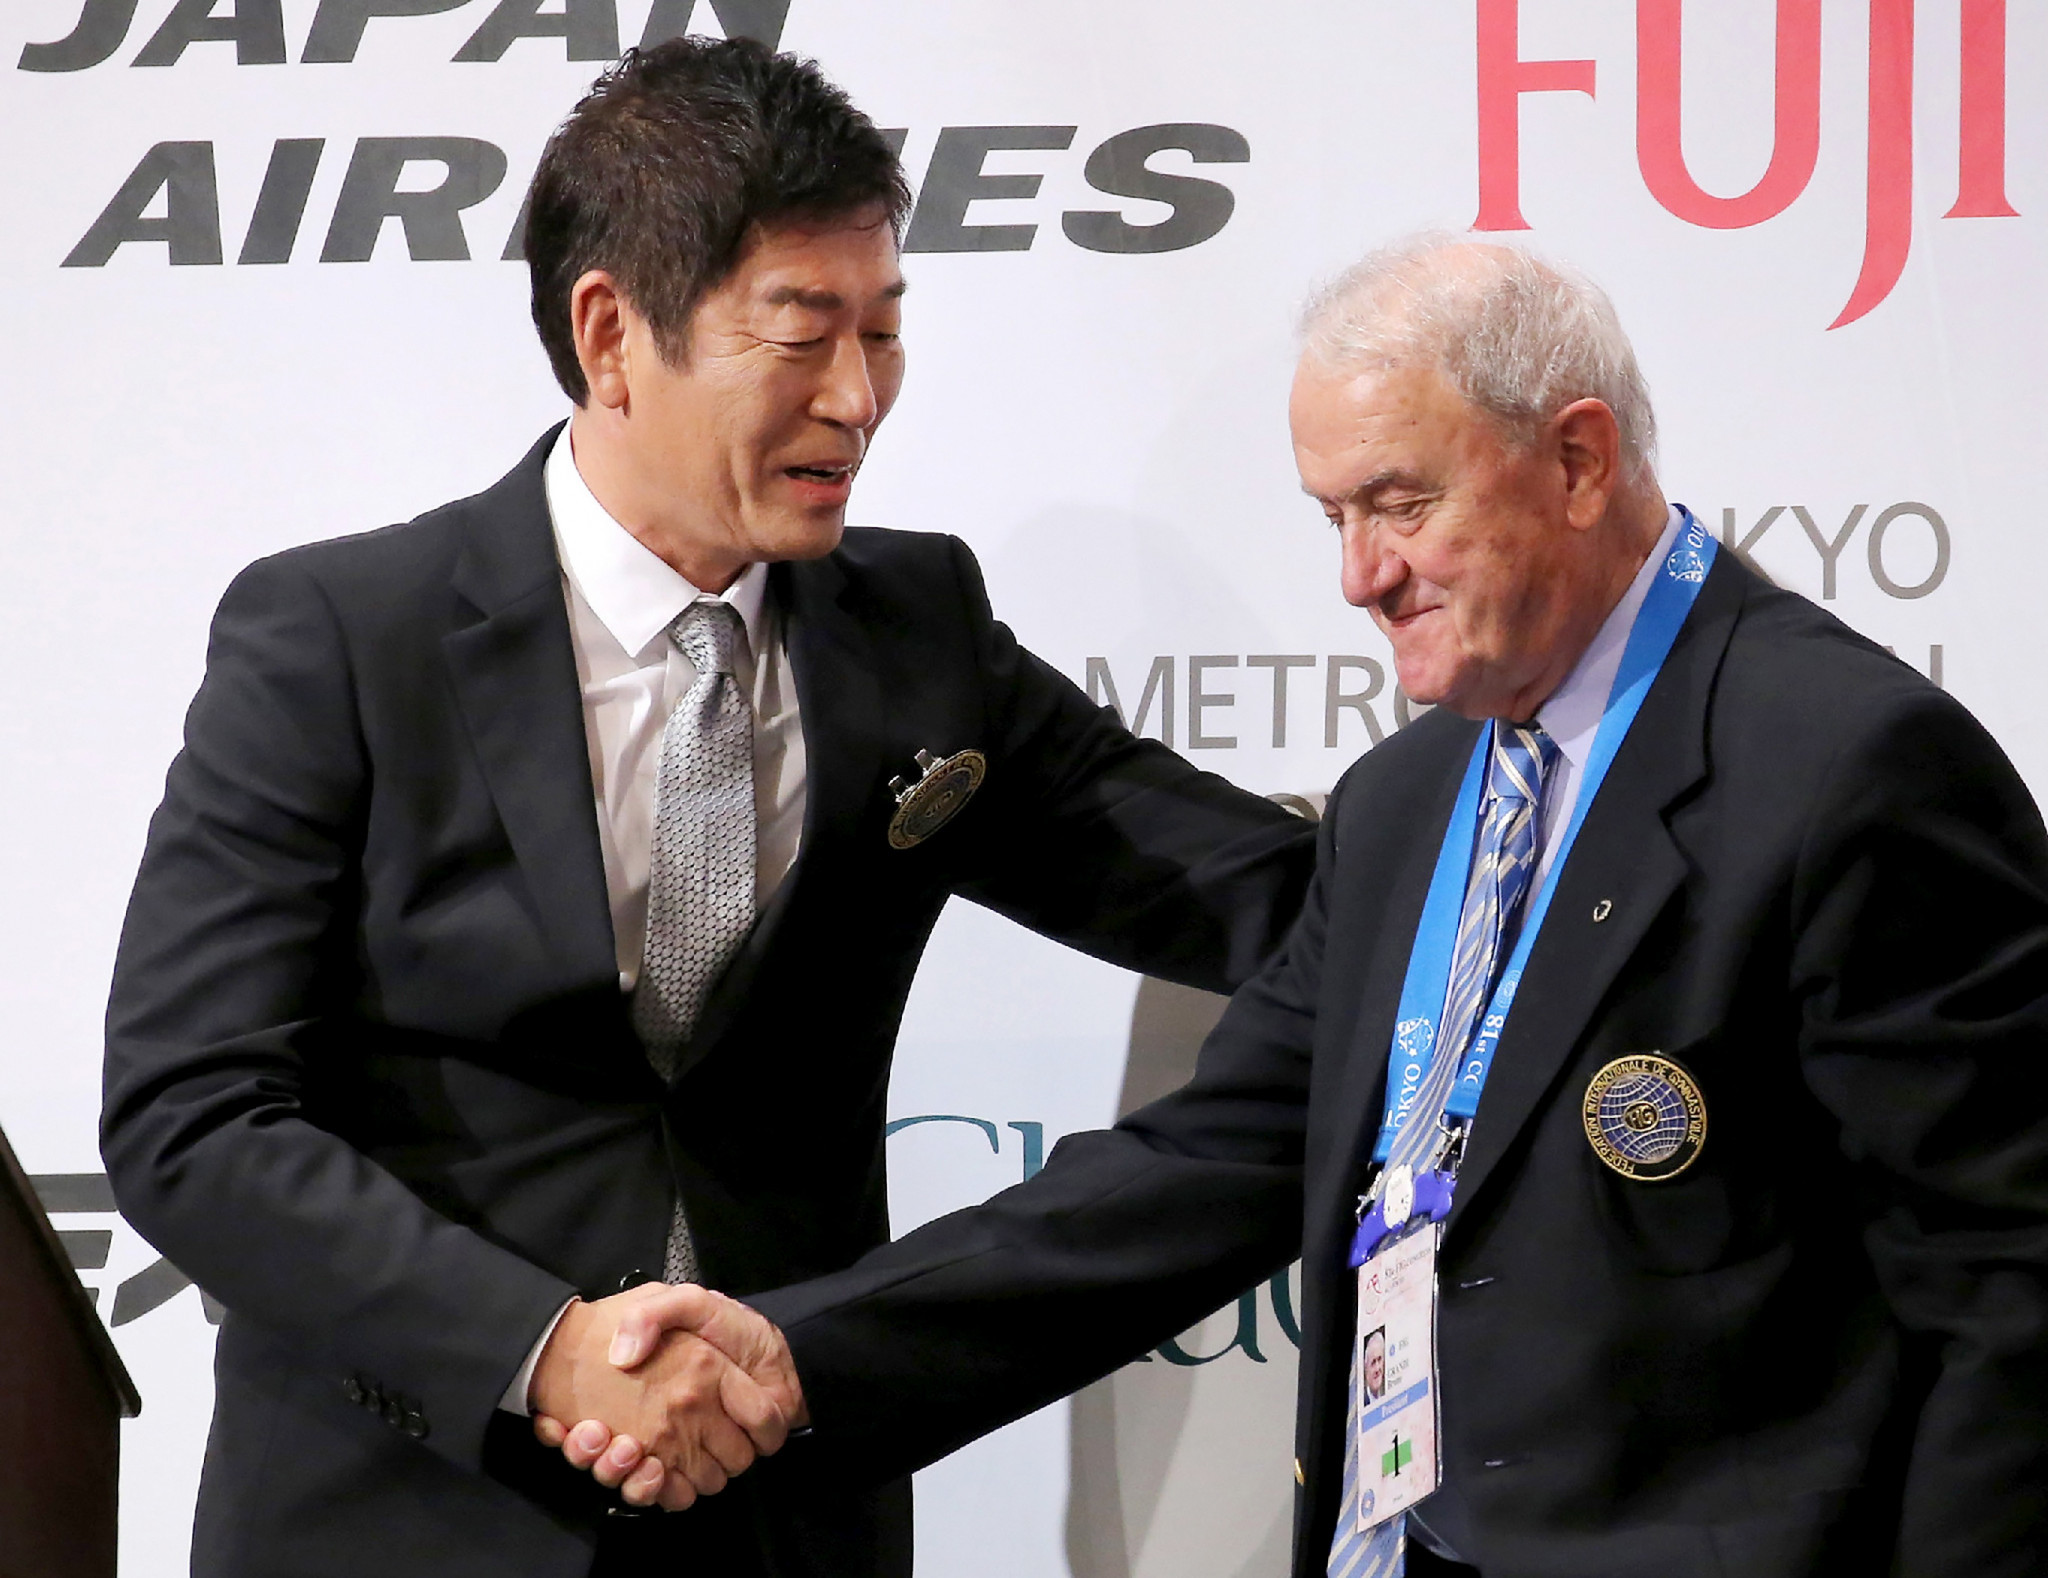 Morinari Watanabe called on the FIG to innovate to remain relevant in 2018 ©Getty Images